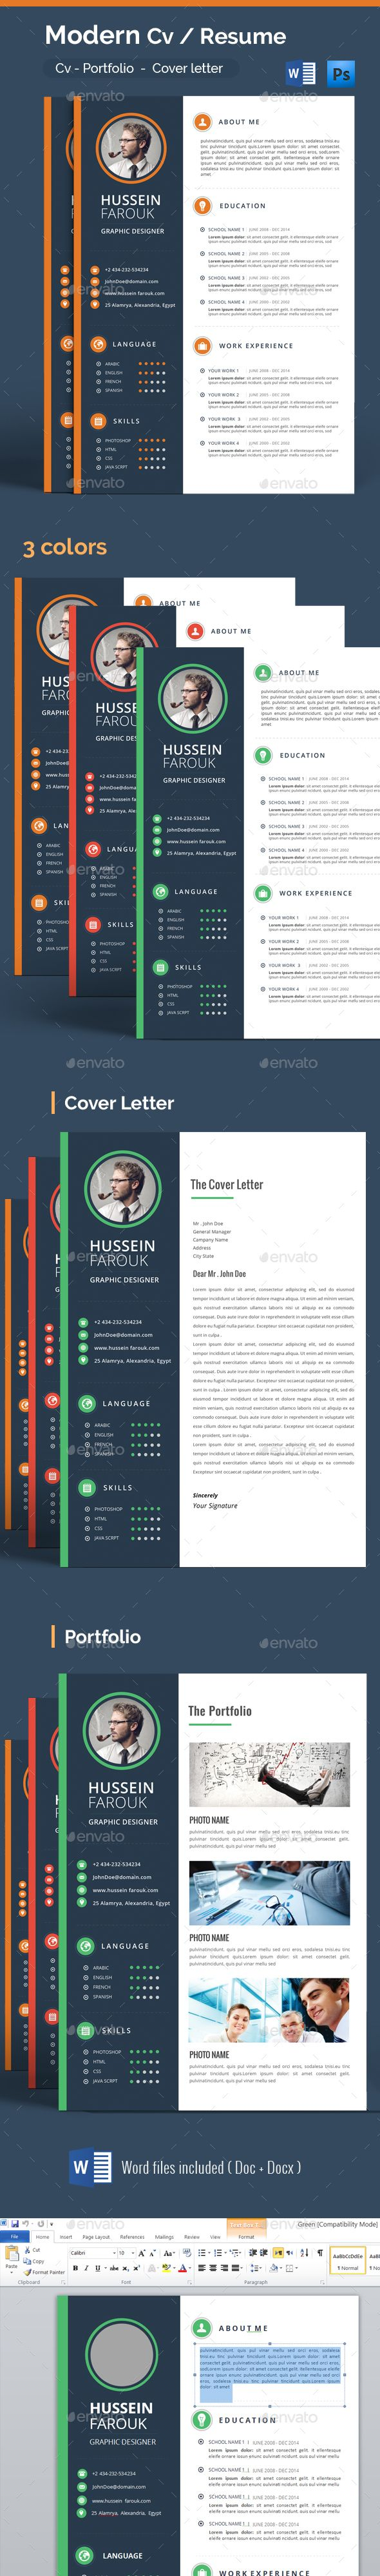 Resume Template The Best and Worst